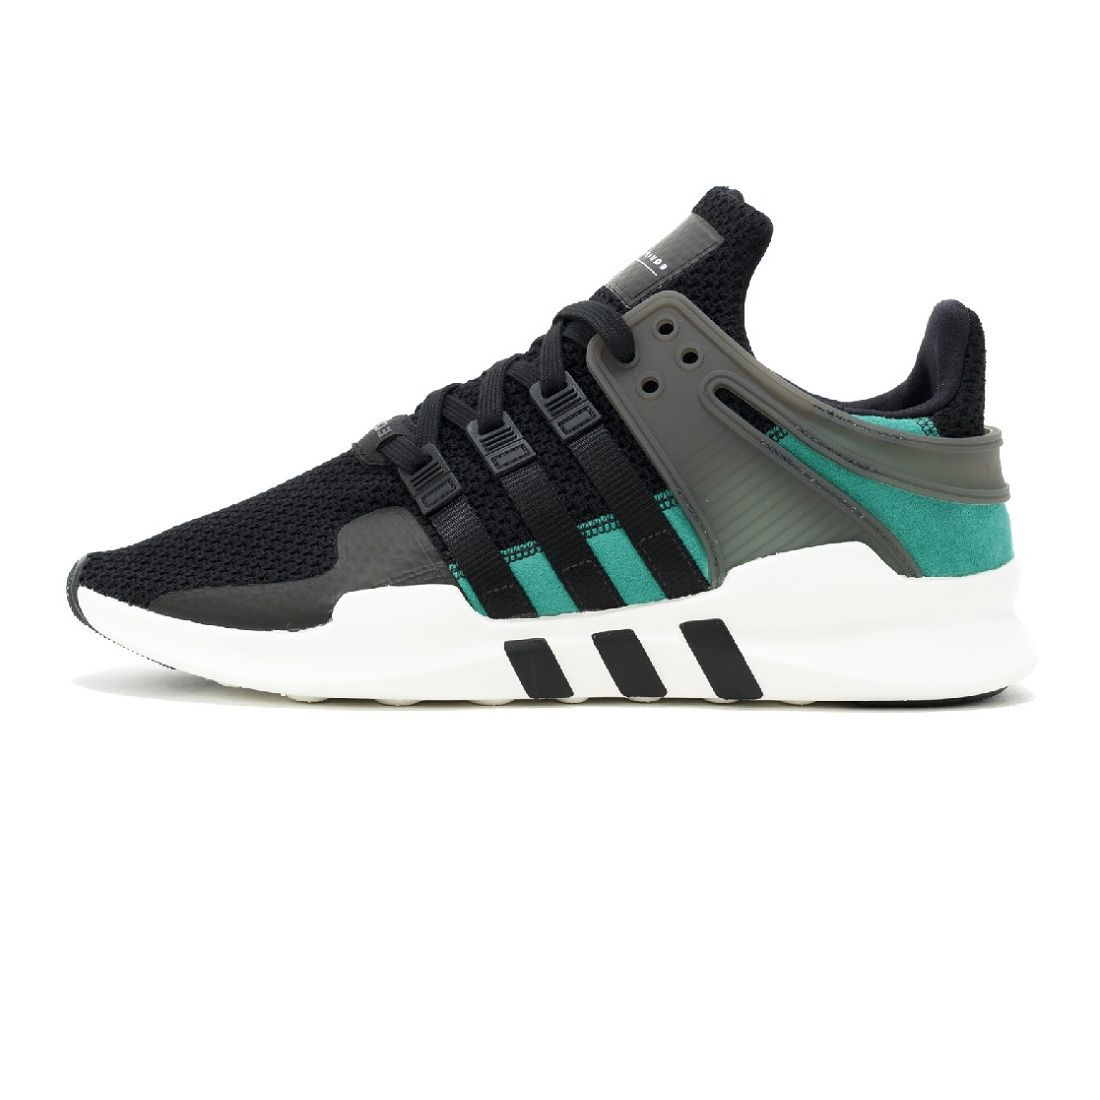 new product e89a1 79ab5 Adidas EQT Support ADV Gray Running Shoes - Buy Adidas EQT ...